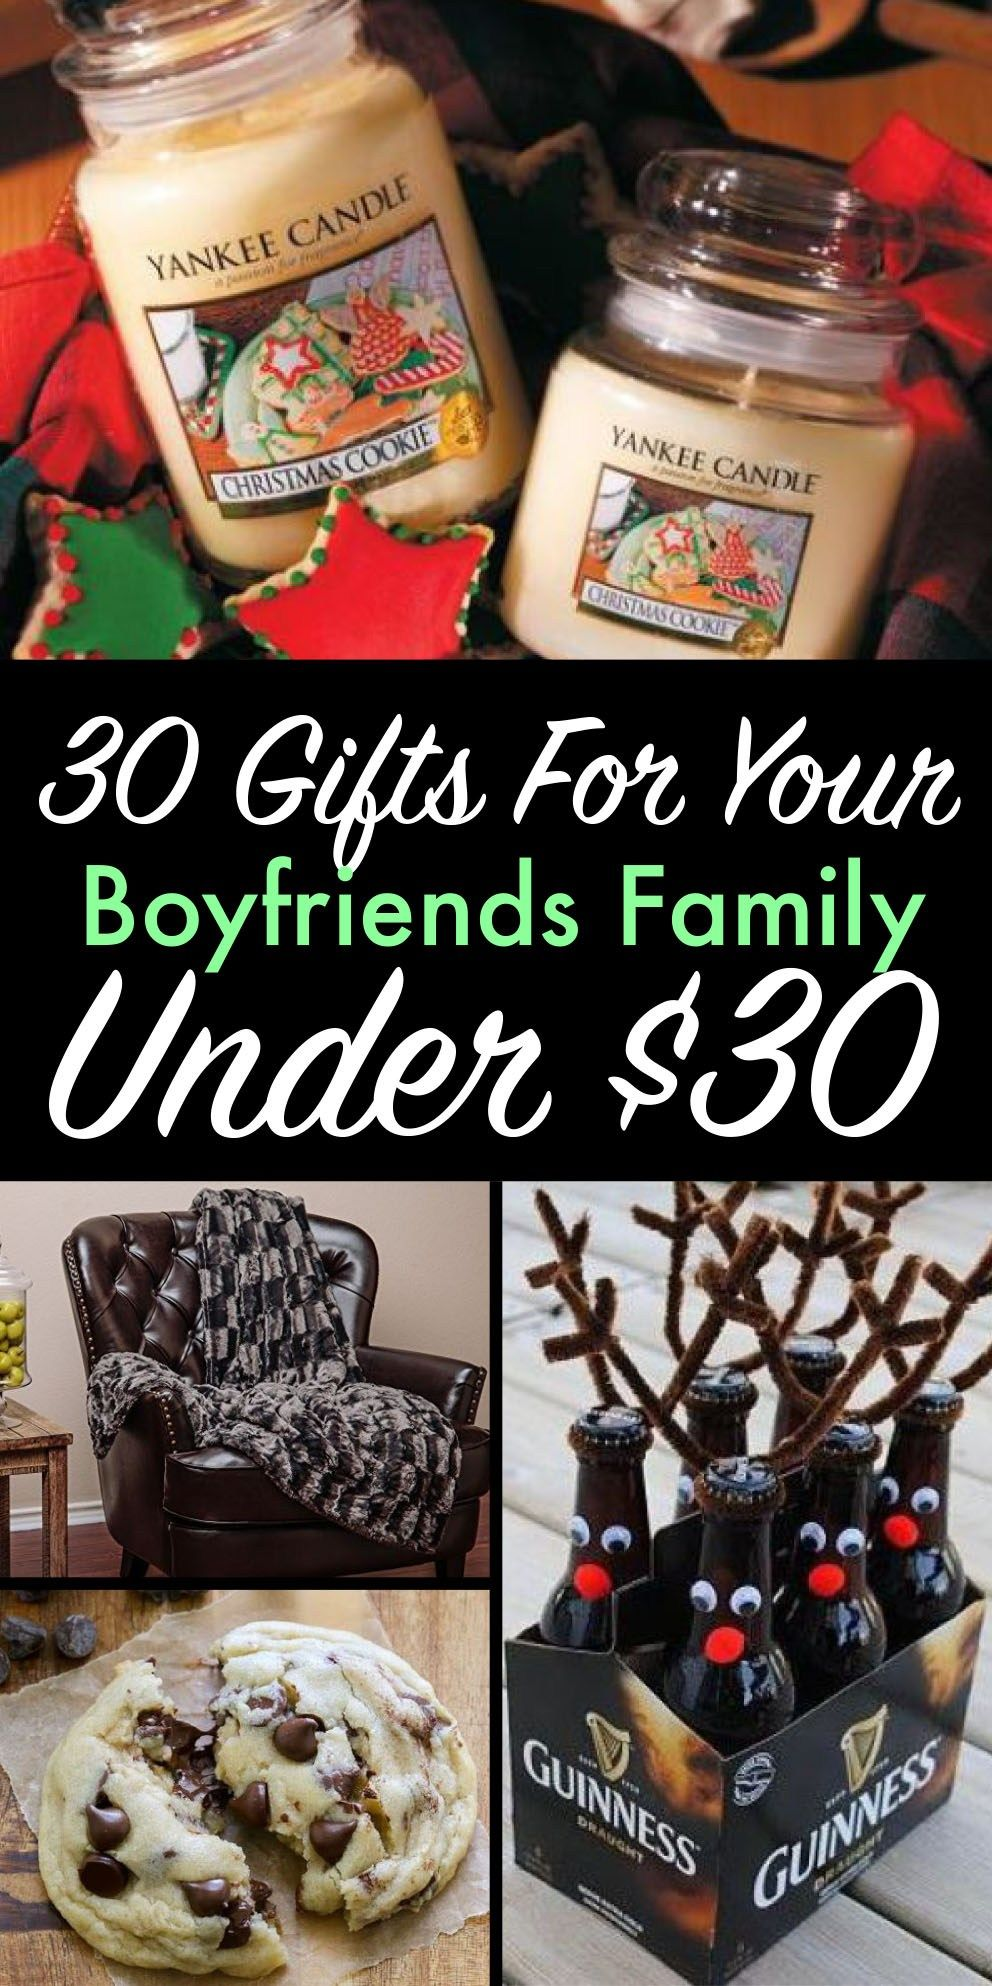 gifts for your boyfriends family under 30